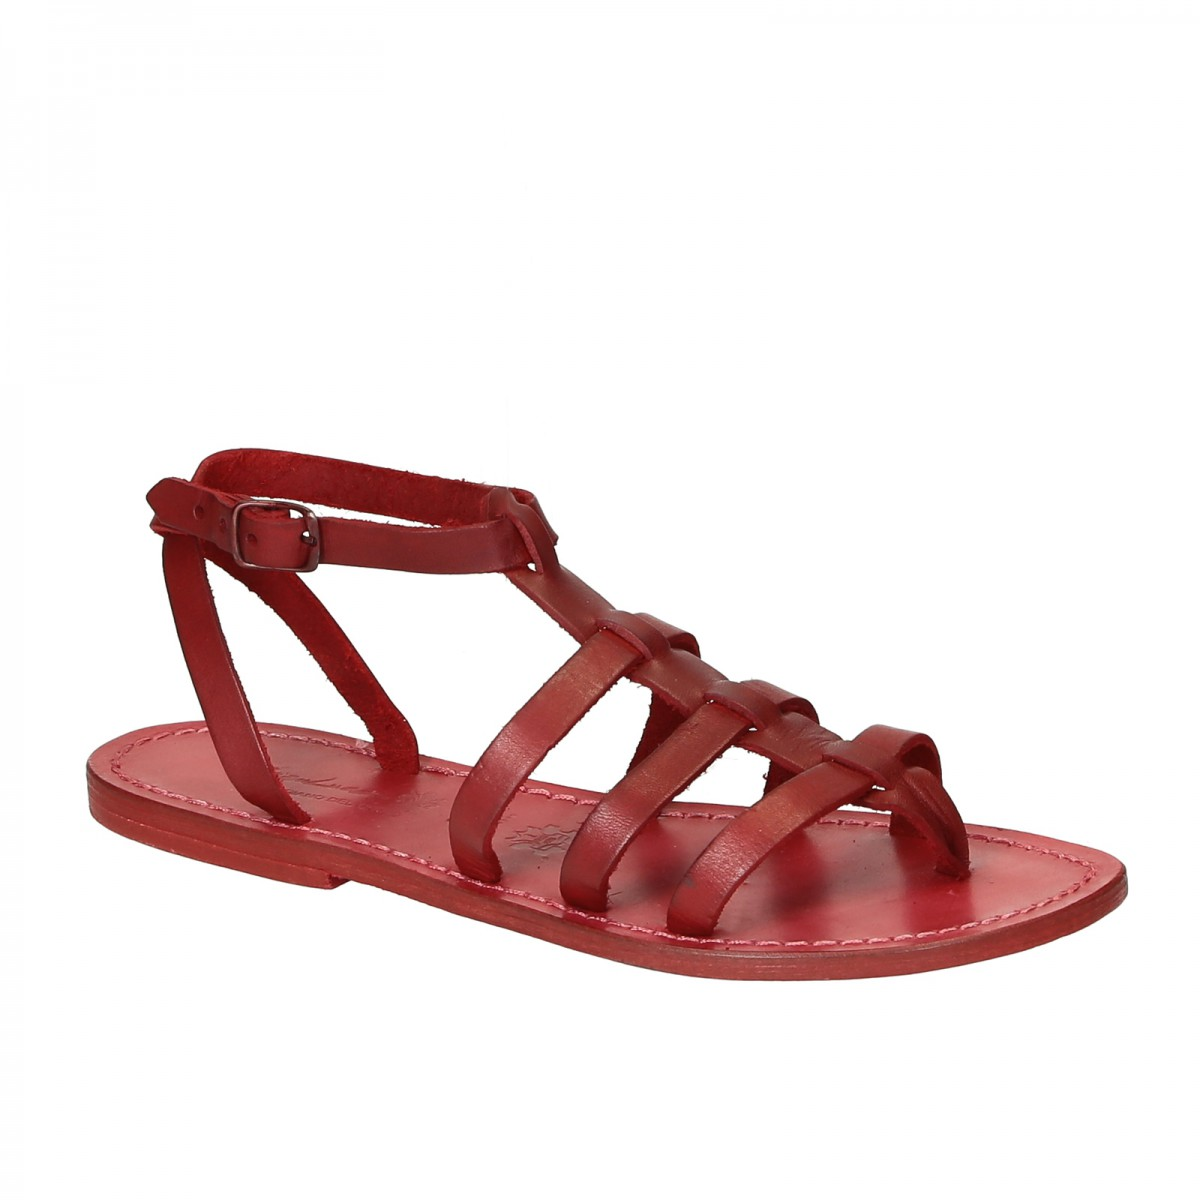 Women S Red Gladiator Sandals Handmade In Italy Gianluca